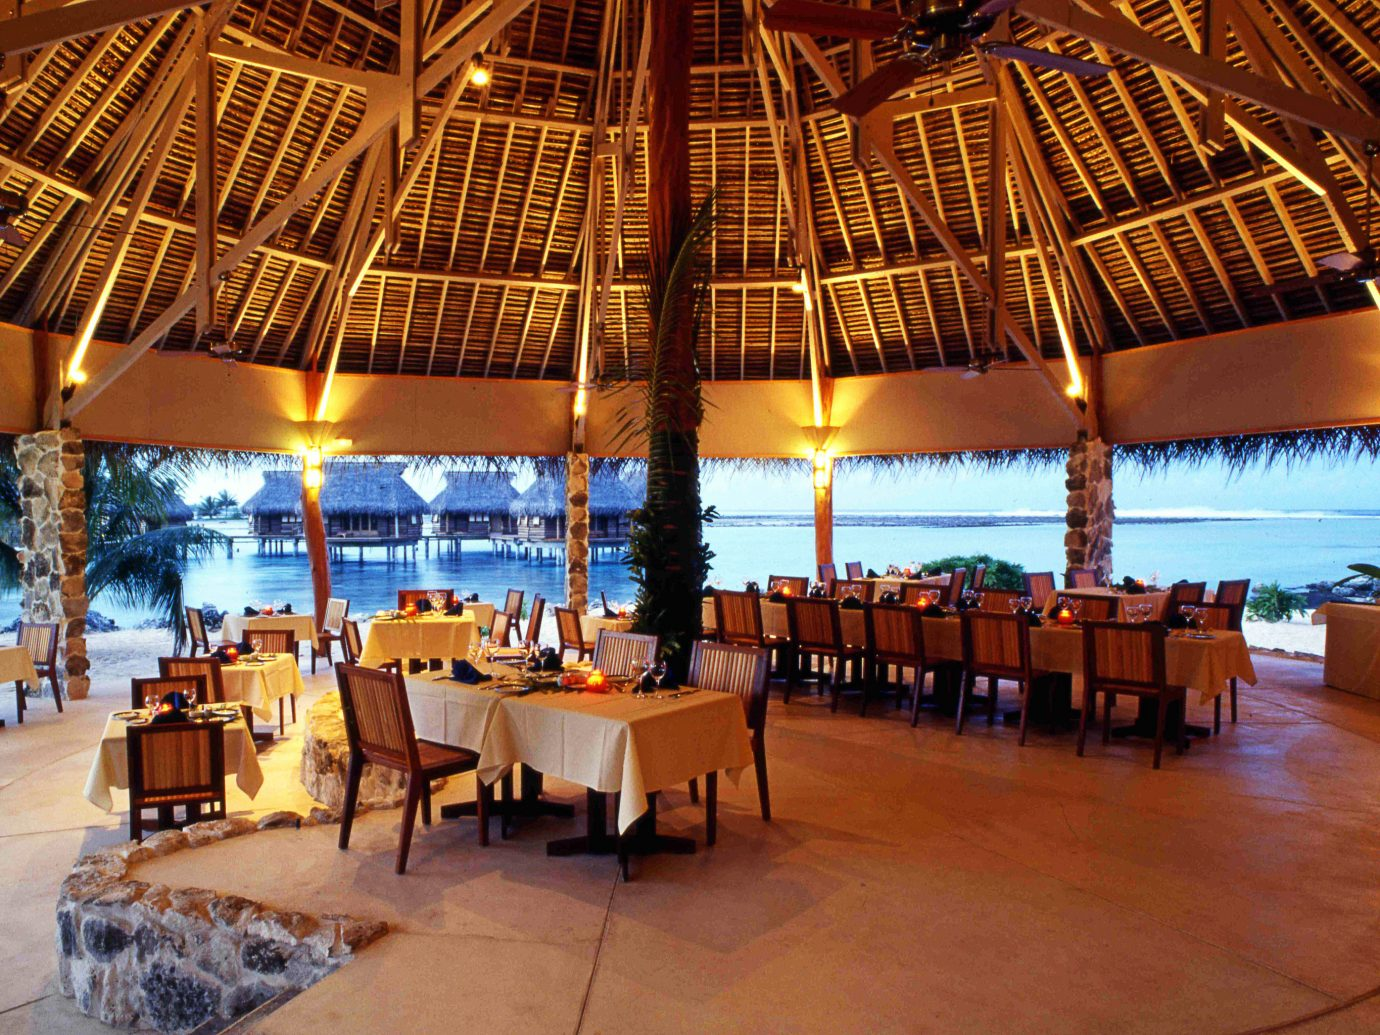 All-Inclusive Resorts Beachfront Boutique Hotels Cultural Dining Drink Eat Hotels Overwater Bungalow Resort Romance table floor chair restaurant estate palace several